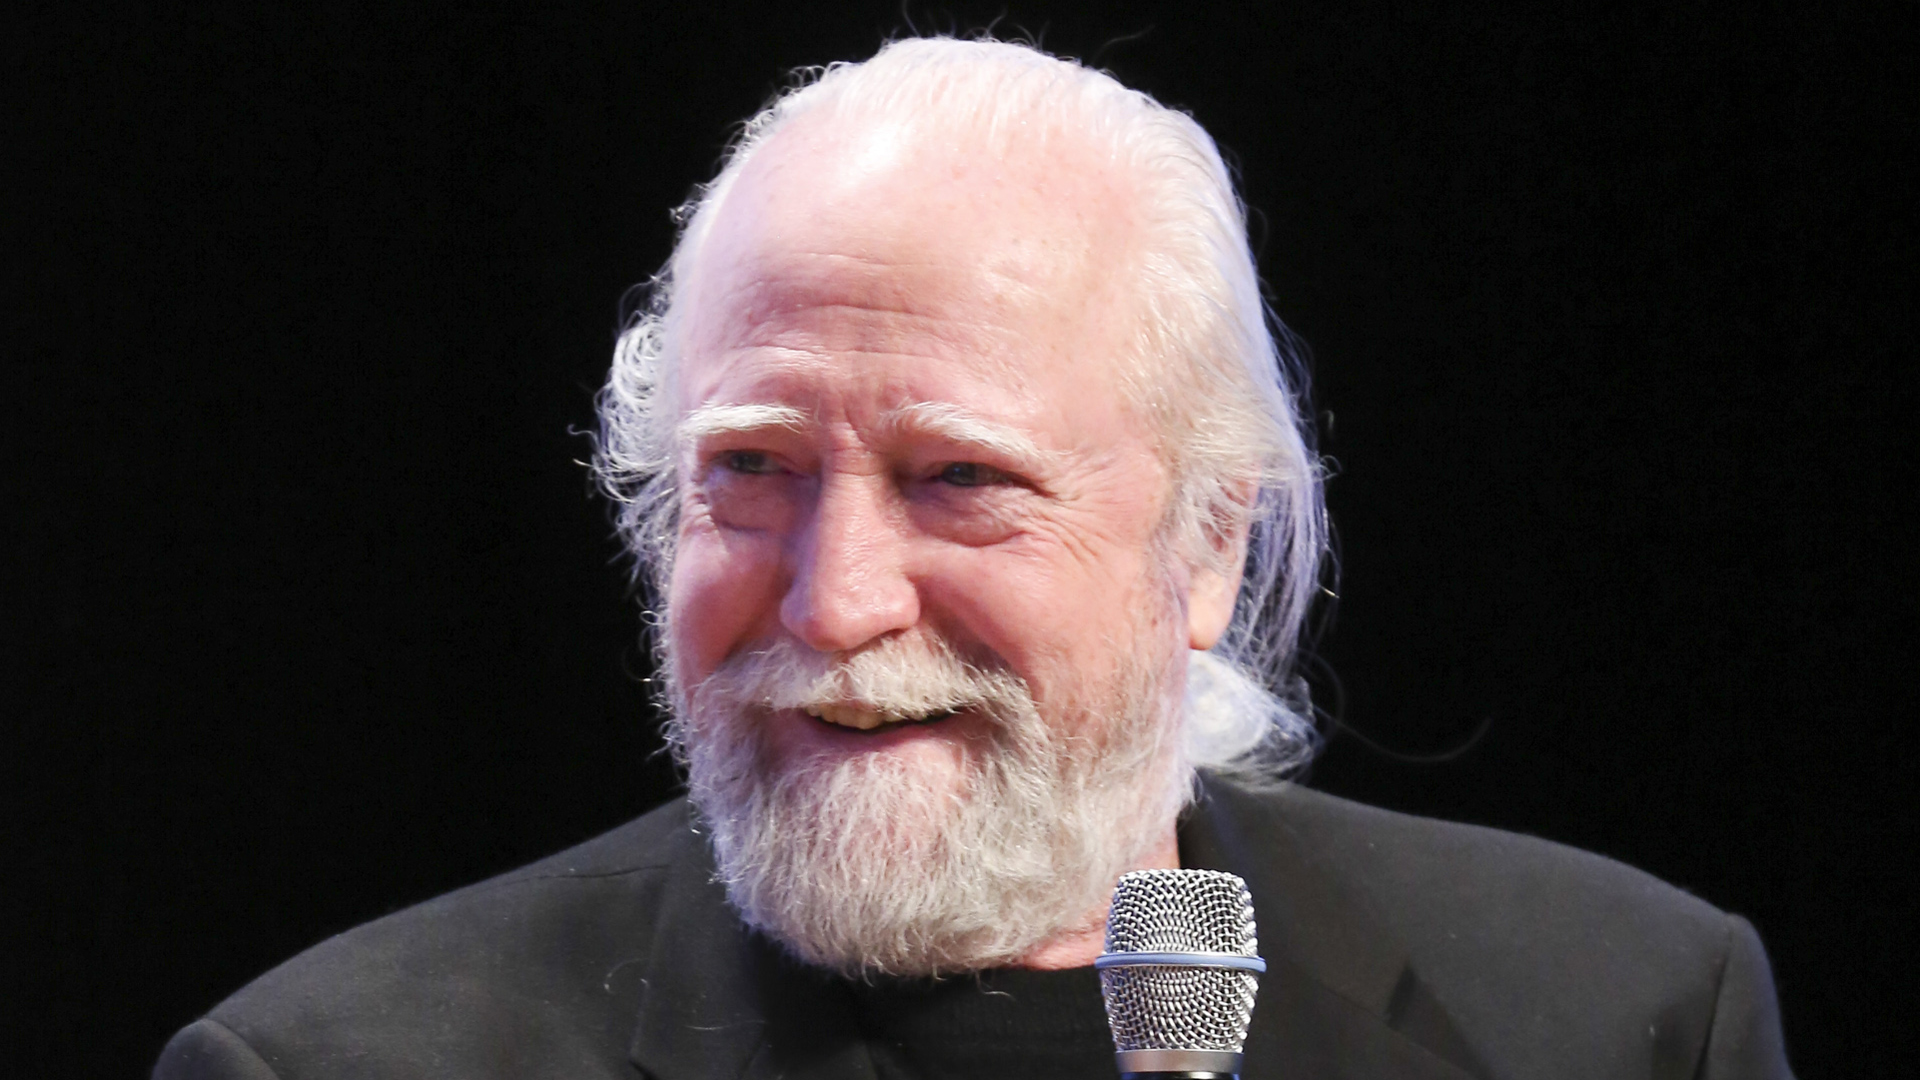 Actor Scott Wilson speaks at a panel discussion following the screening of 'The Walking Dead' on Feb. 8, 2014, in Atlanta. (Credit: Catrina Maxwell/Getty Images for SCAD)